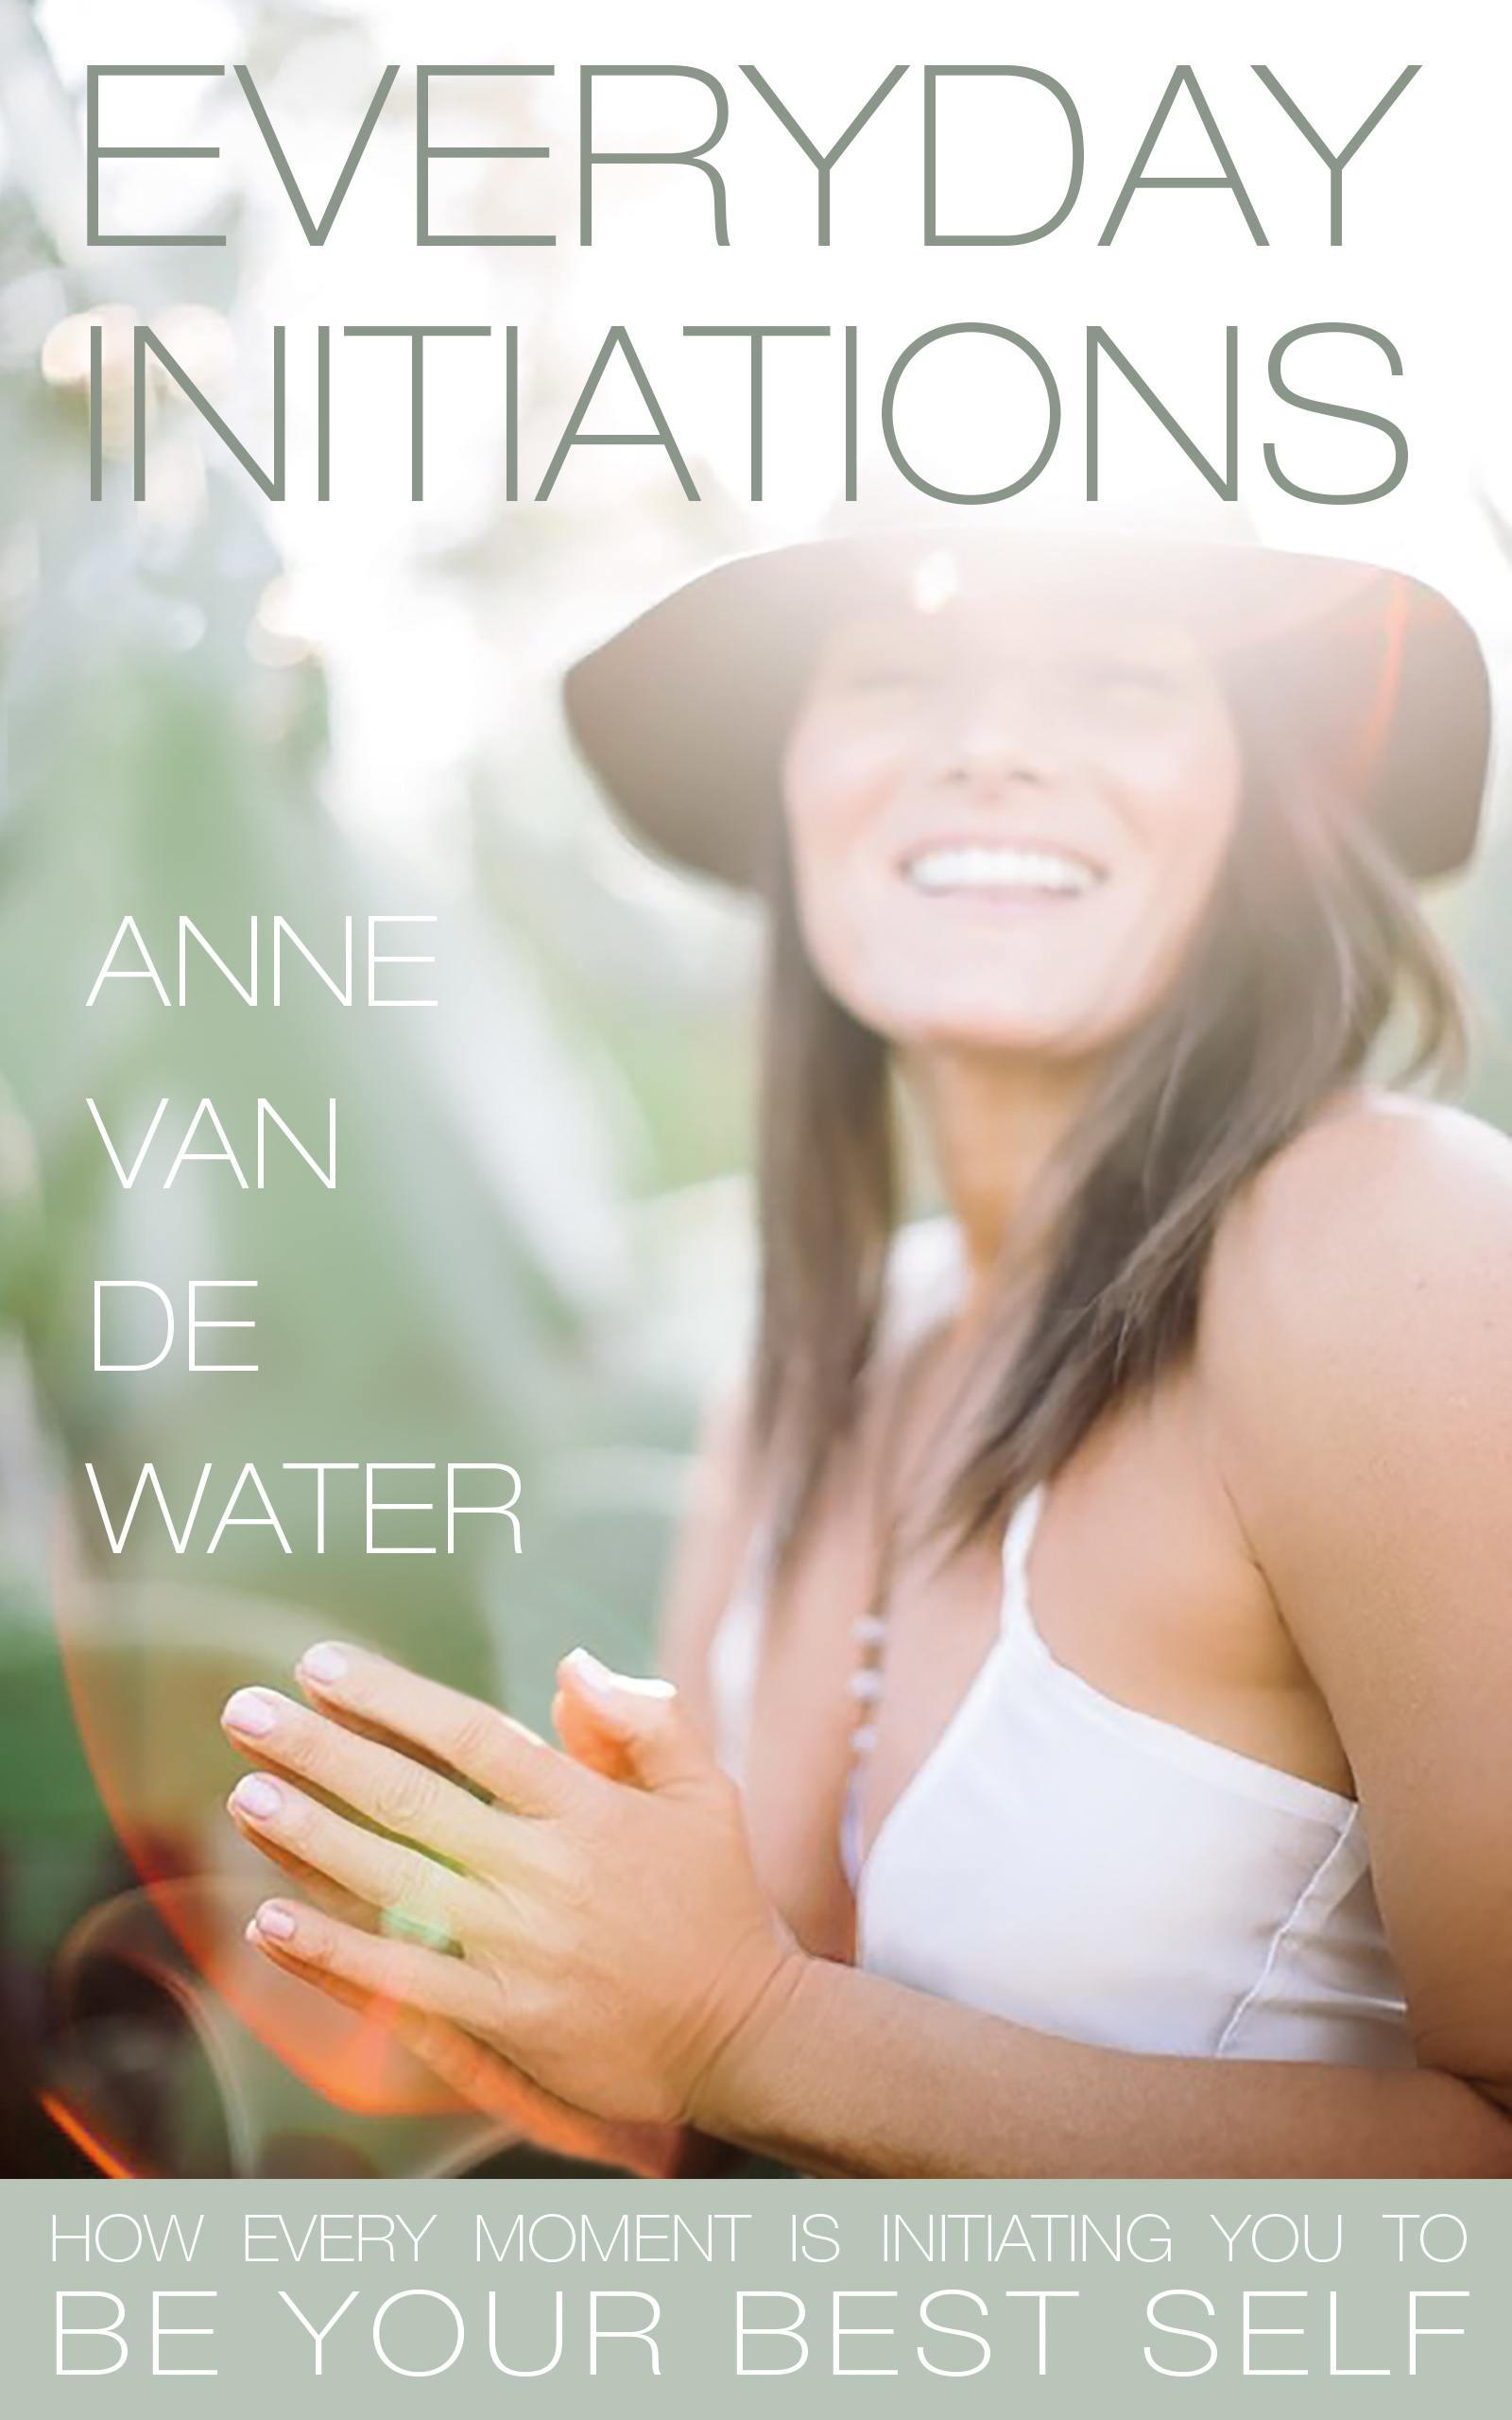 MY BOOK: EVERYDAY INITIATIONS